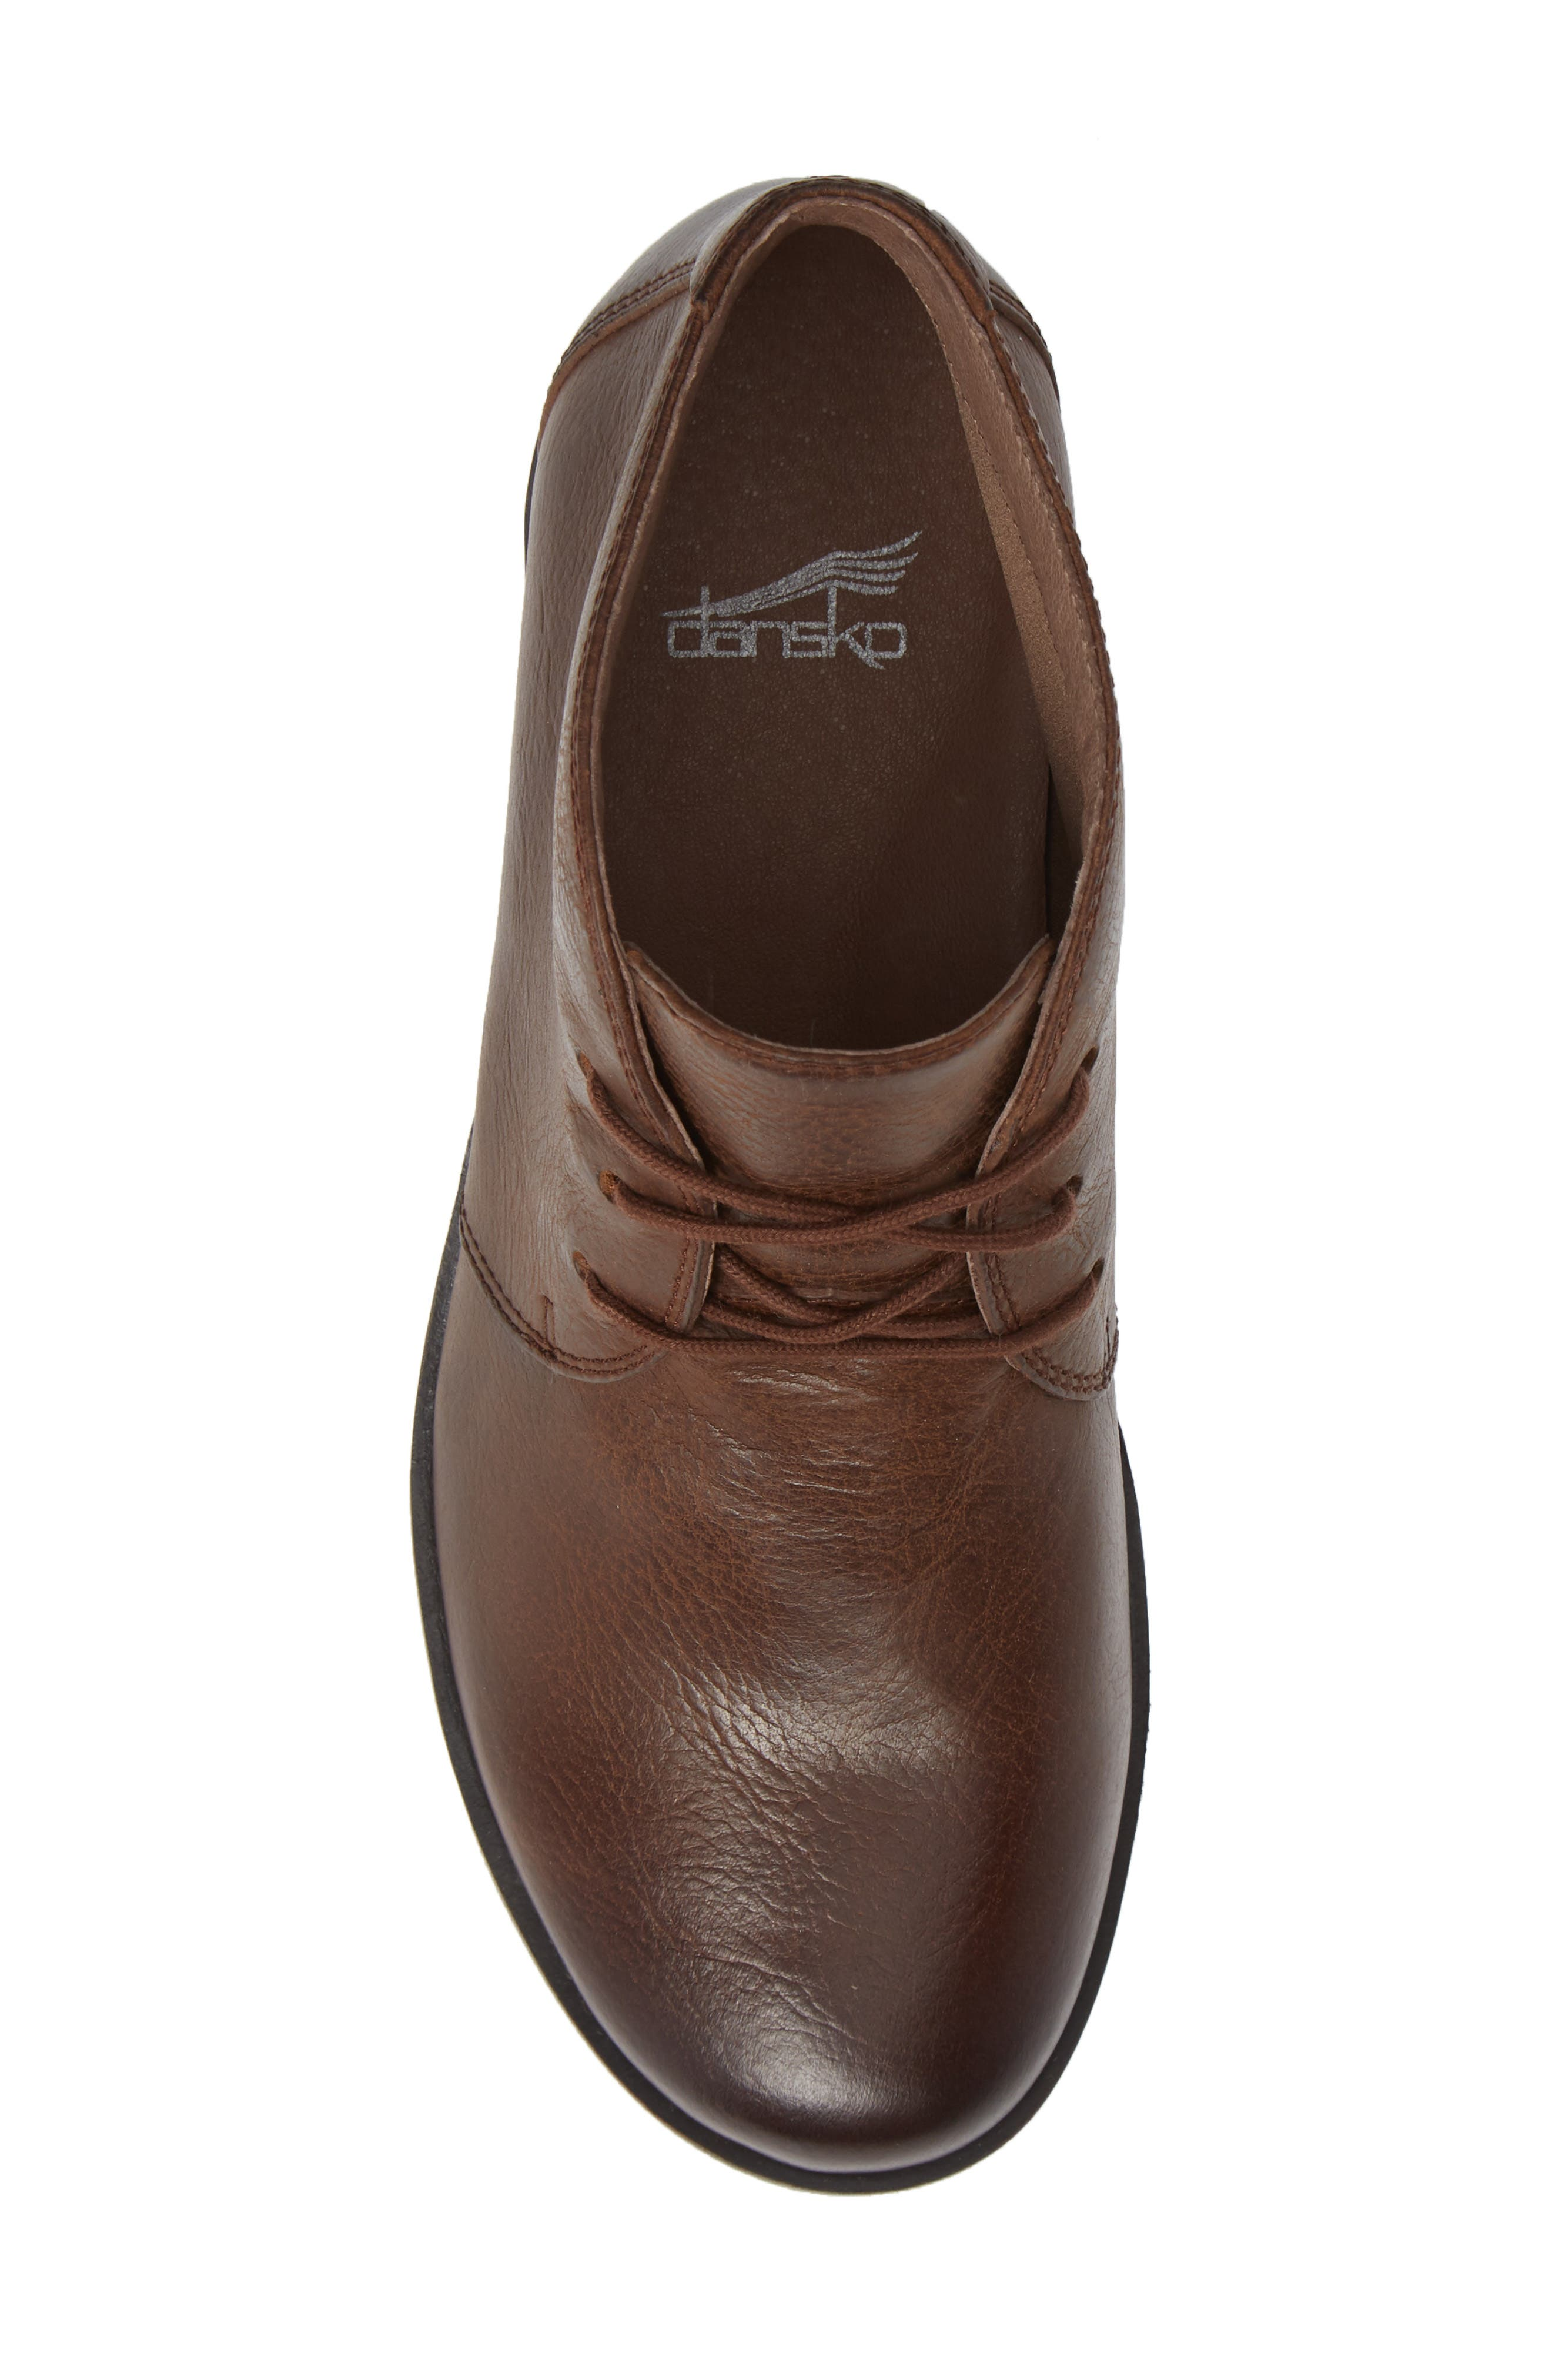 Joy Bootie,                             Alternate thumbnail 3, color,                             Brown Burnished Nubuck Leather